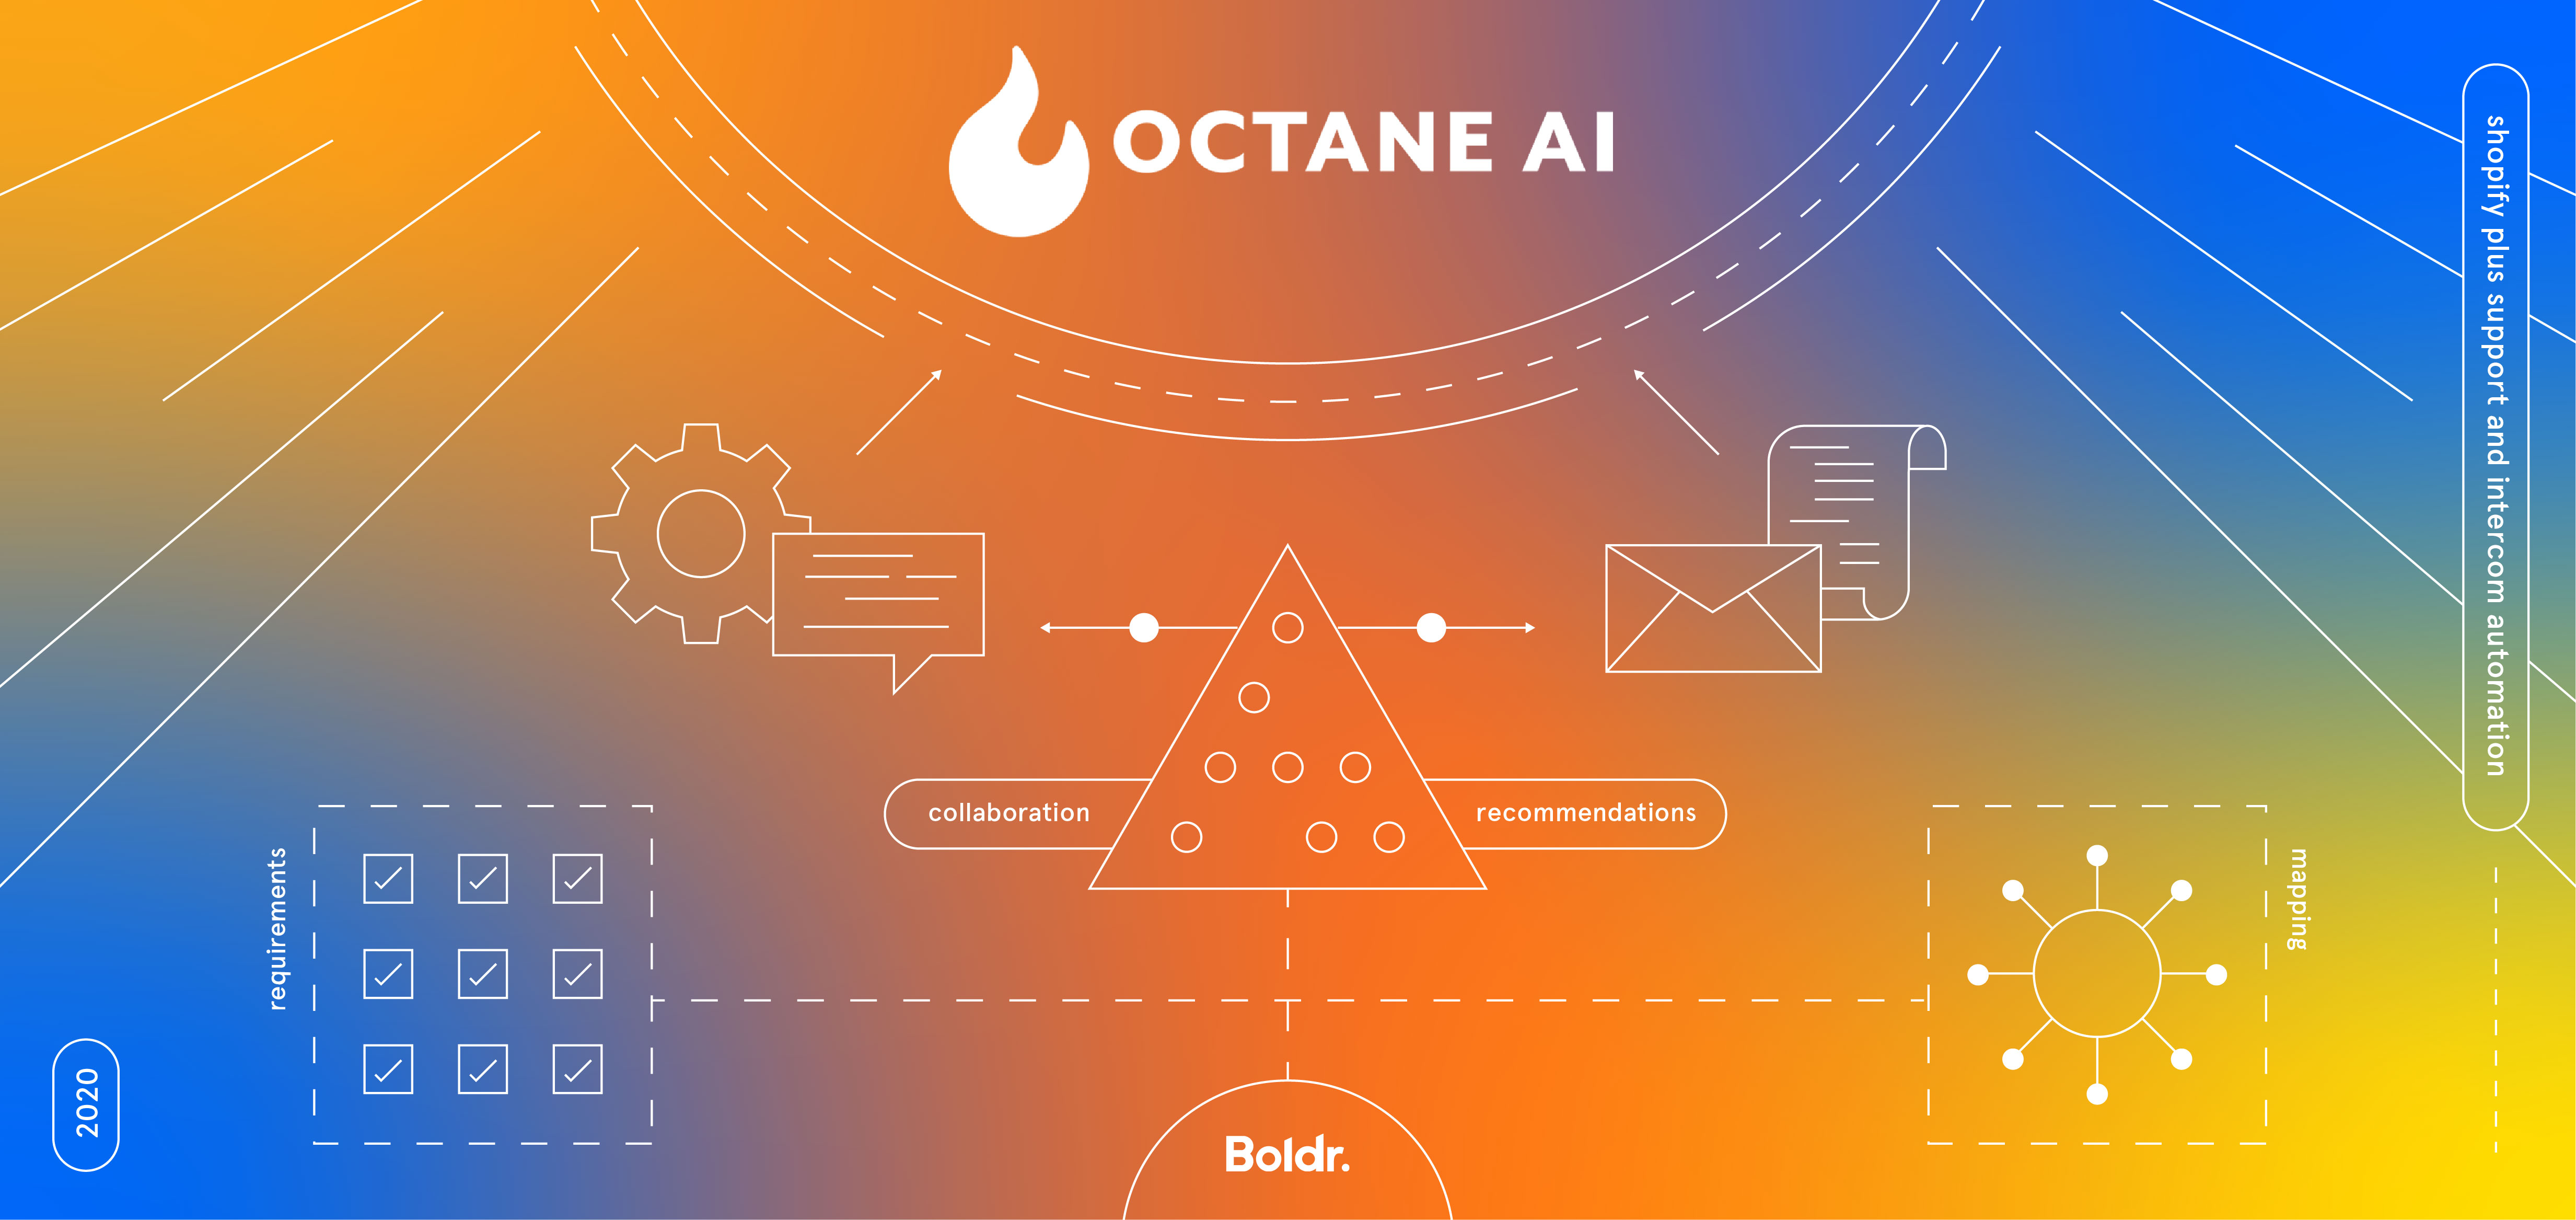 Octane AI Turns to Boldr for Shopify Plus Support and Intercom Automation